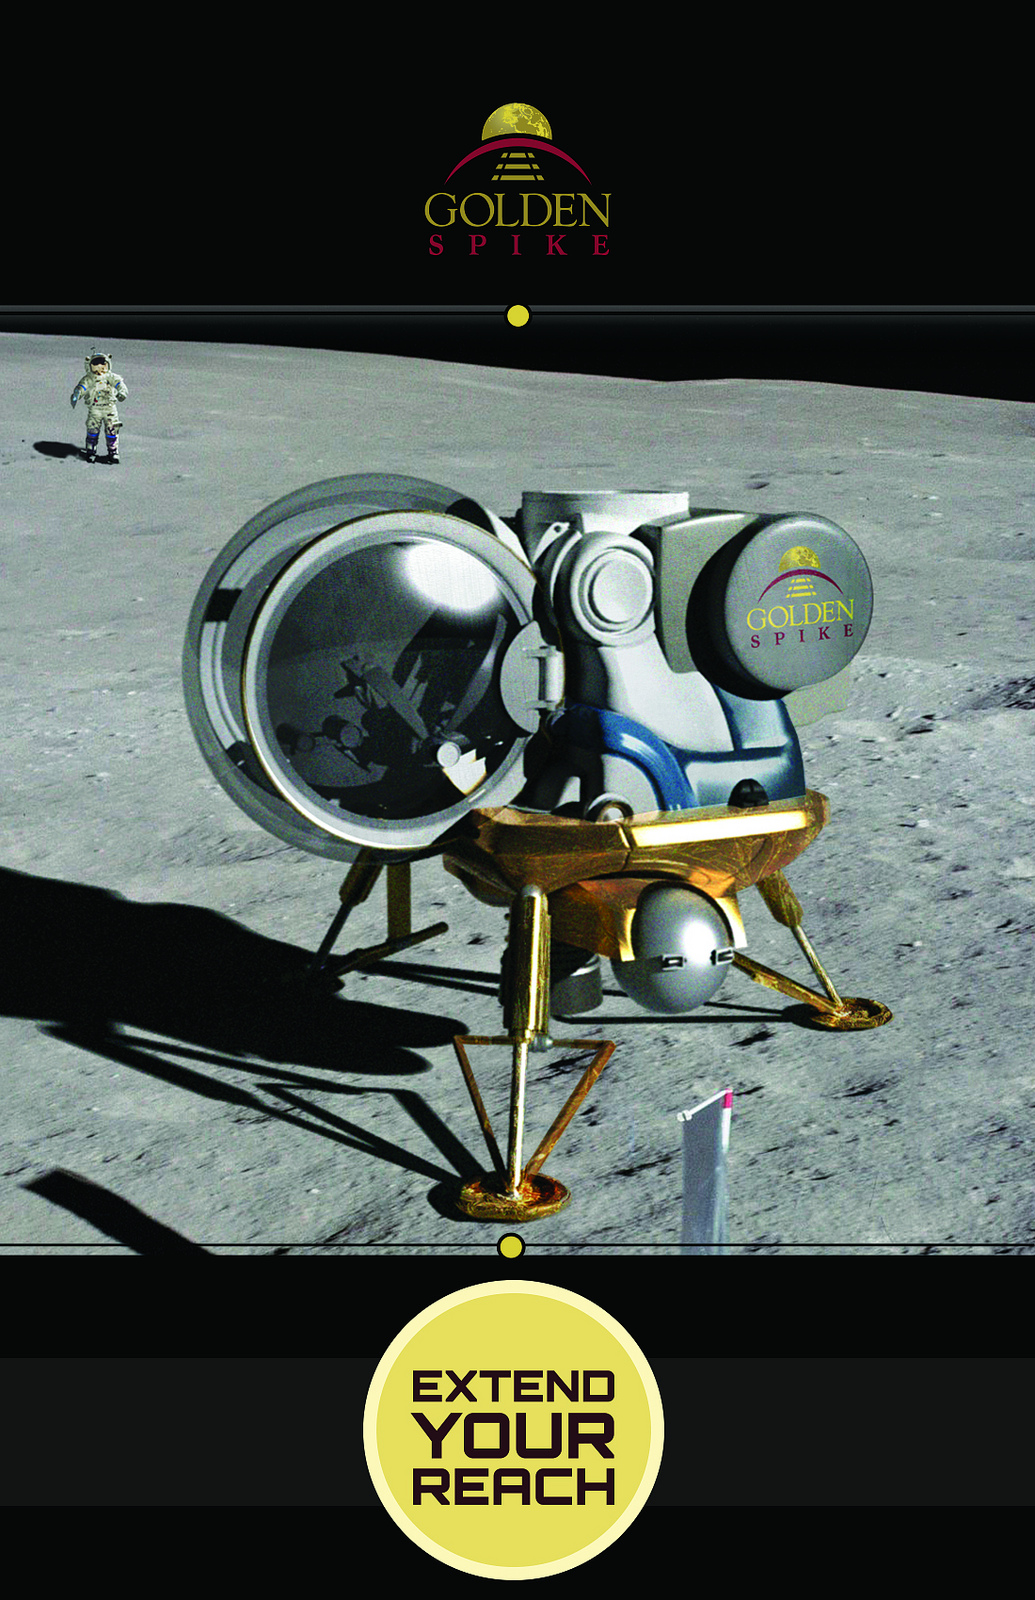 Golden Spike on the Moon: Private Lunar Trips (Photos)